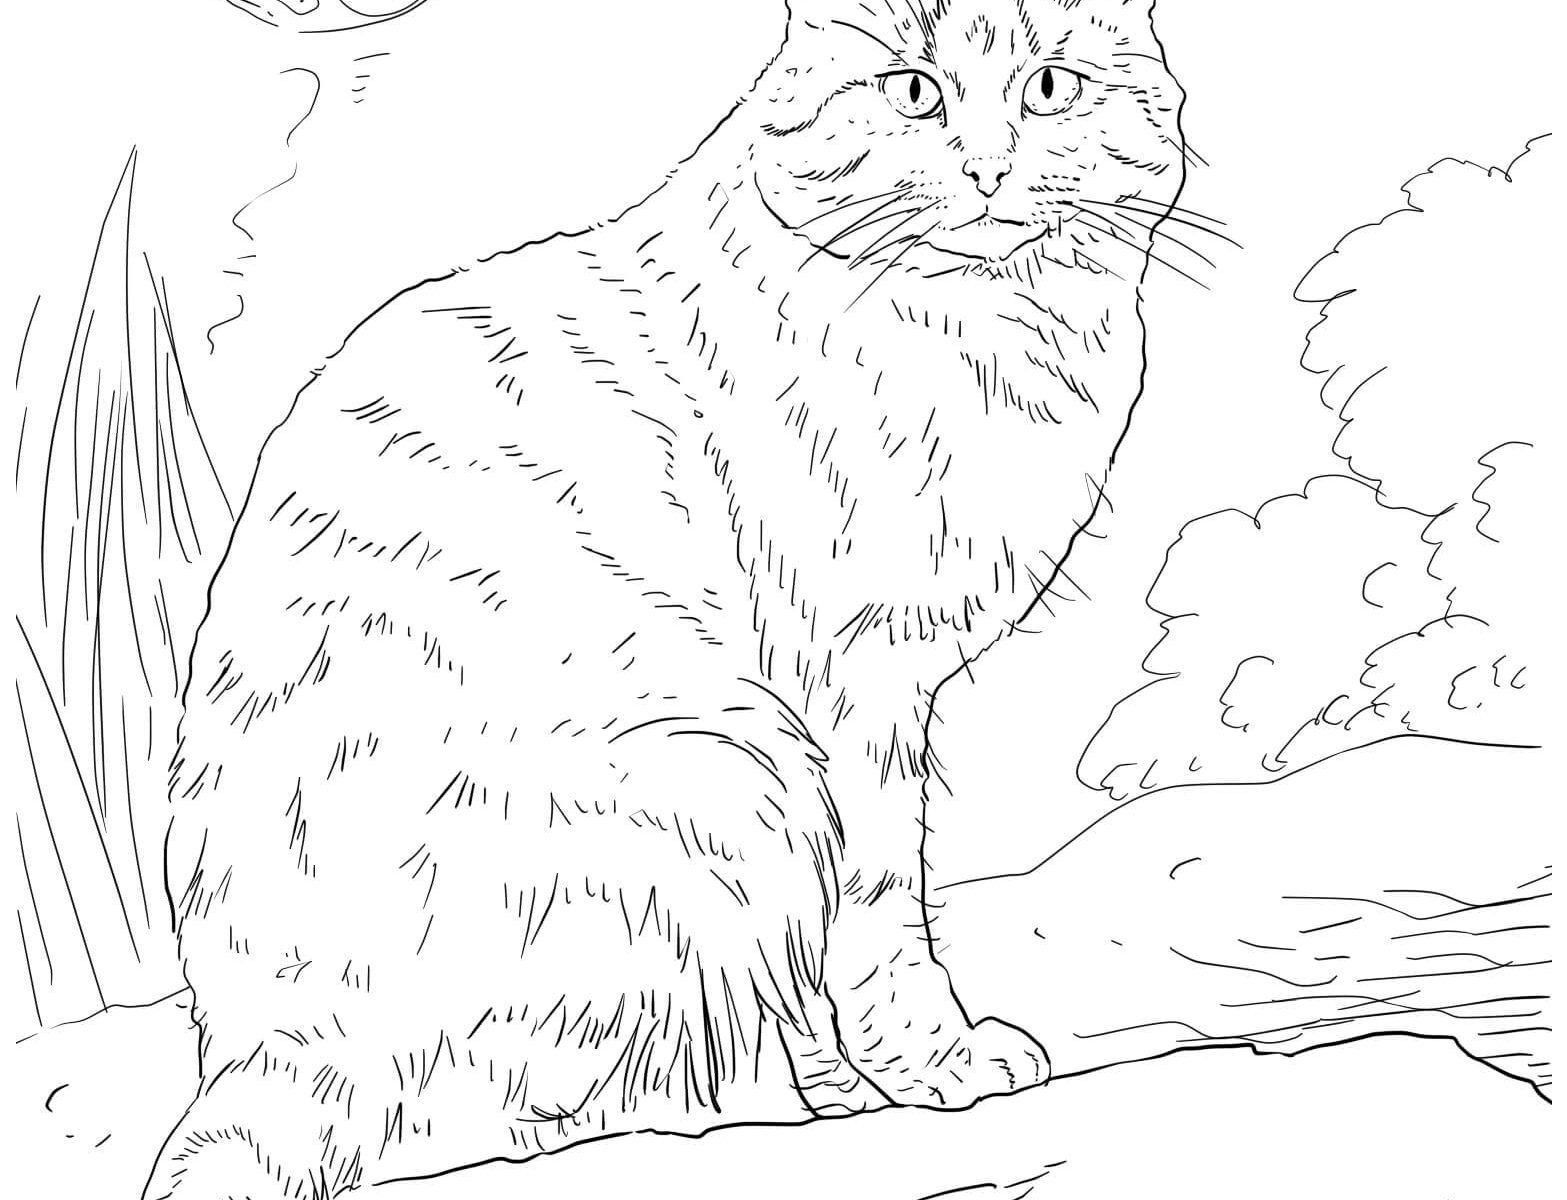 Cat Coloring Pages Printable Awesome 22 Kitty Cat Coloring Pages Printable Collection Coloring Sheets Cat Coloring Page Animal Coloring Pages Dog Coloring Page